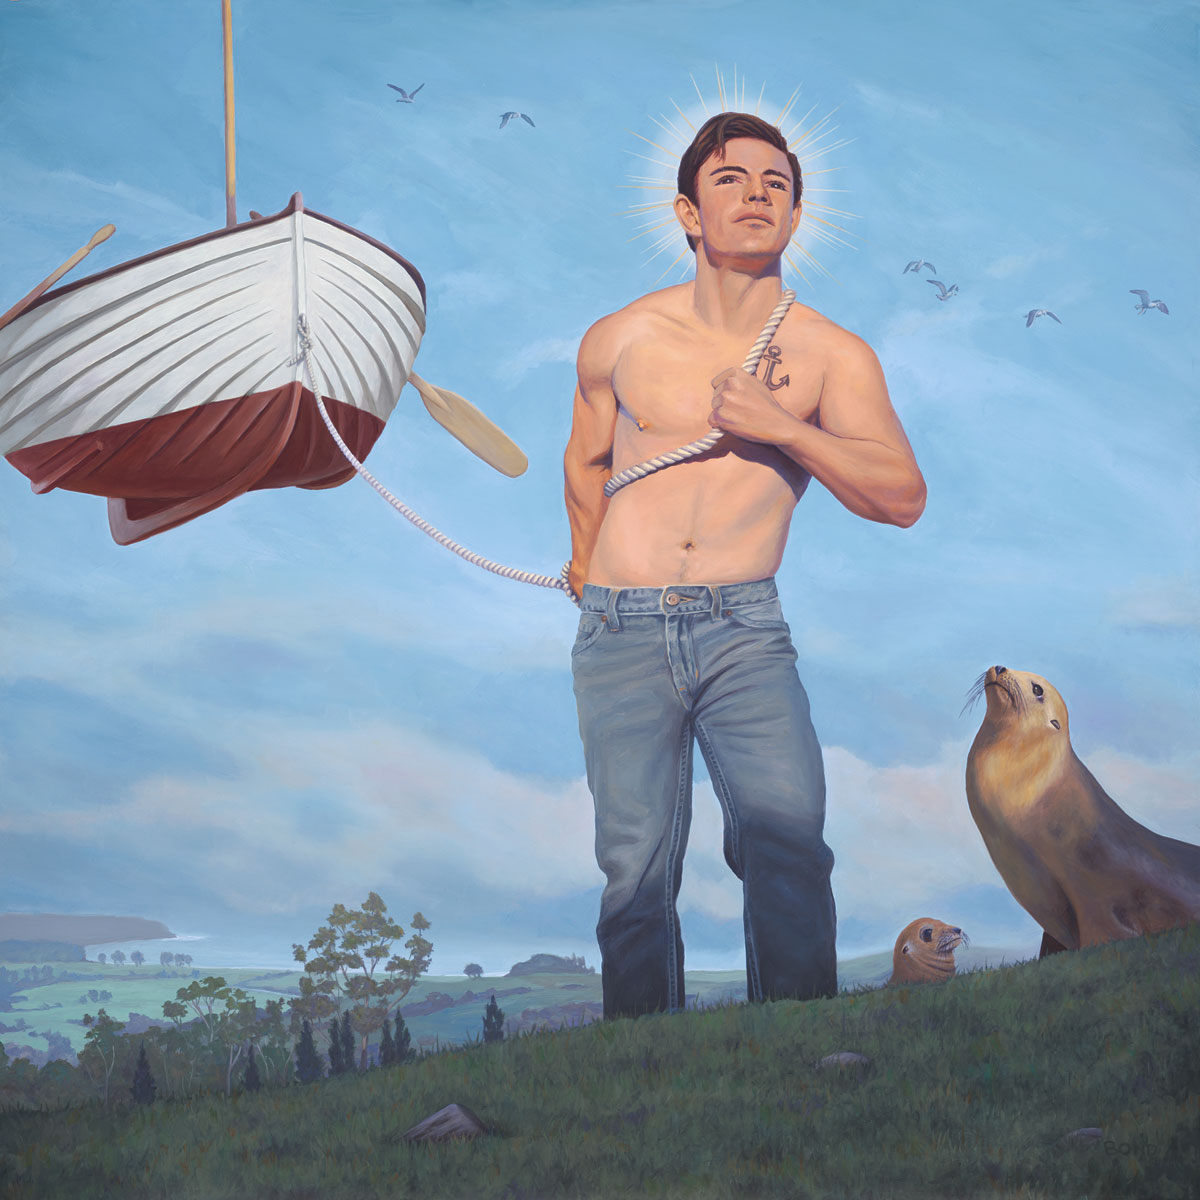 Daniel, Patron Saint of Wayward Mariners, painting of a man pulling a floating boat, allegory, time, illusion, boy, saint, hero, sky, water, ocean, seal, sea lion, birds, floating, waves, wings, boat, love, strong, transformation, desire, power, strength, wisdom, kindness, natural, trompe l'oeil, soulful uplifting inspirational art, soul stirring illusion art, romantic art,  surrealism, surreal art, dreamlike imagery, fanciful art, fantasy art, dreamscape visual, metaphysical art, spiritual painting, metaphysical painting, spiritual art, whimsical art, whimsy art, dream art, fantastic realism art, magic realism oil painting by Paul Bond